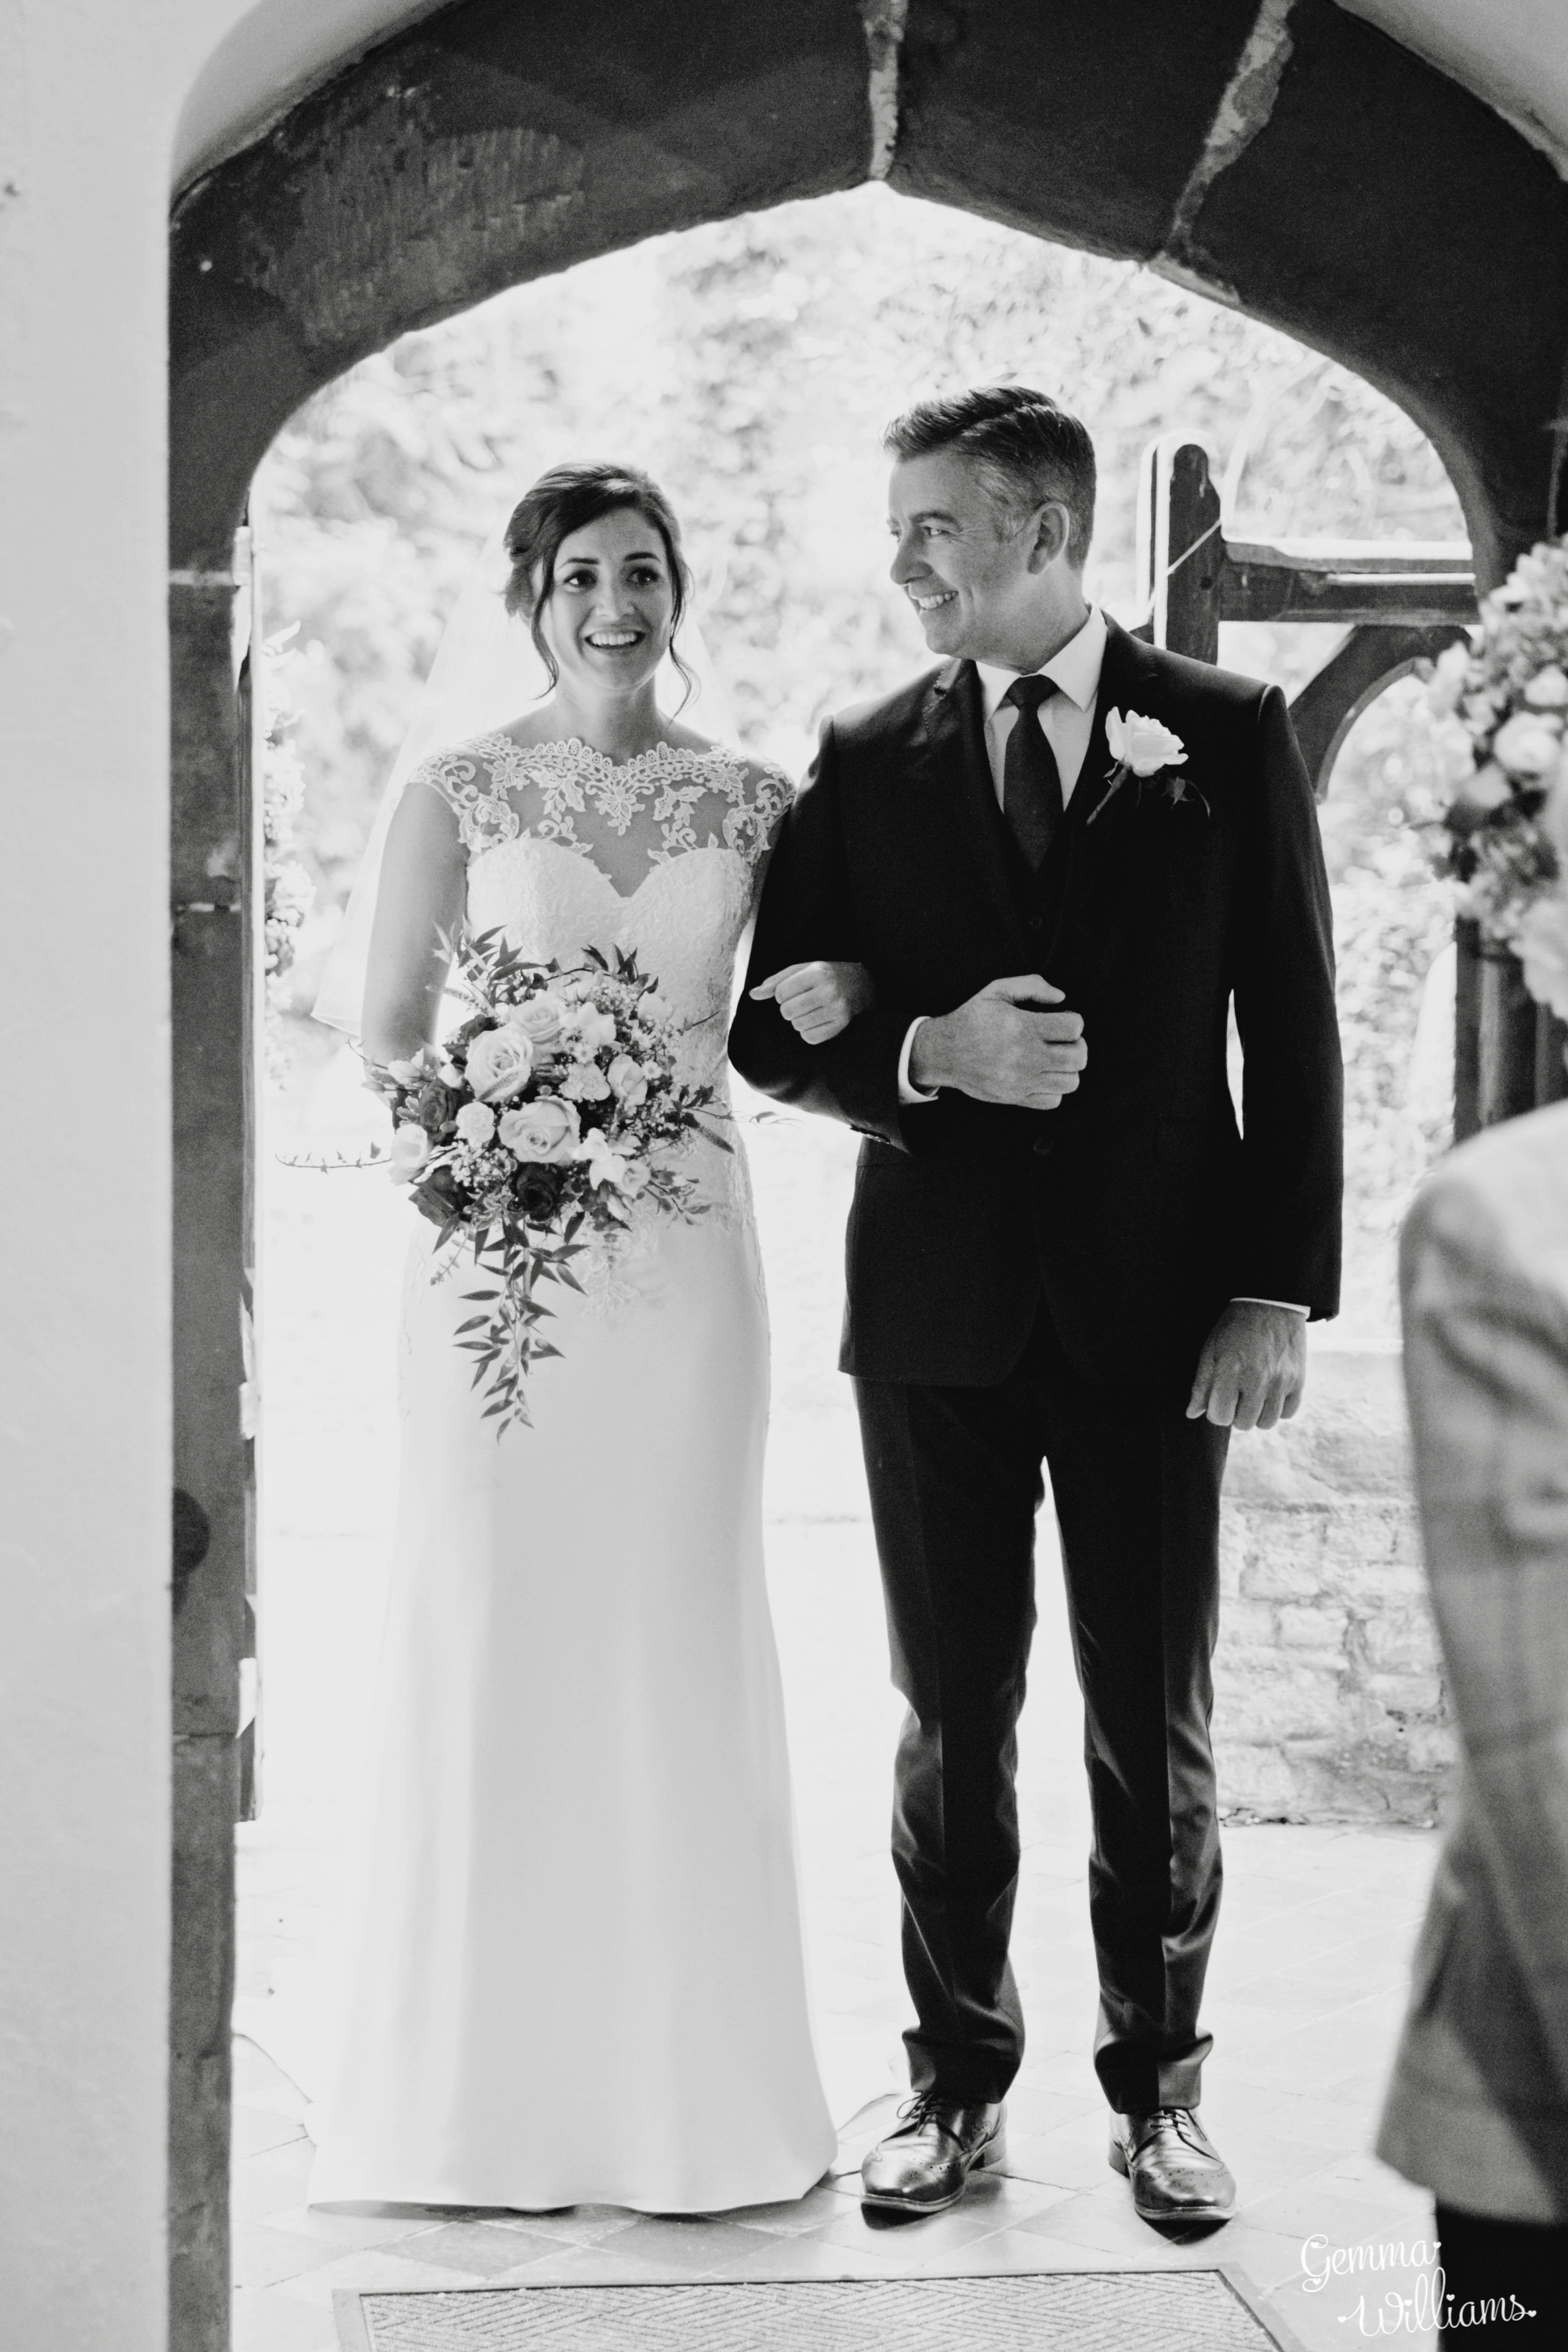 GemmaWilliamsPhotography_Weddings2018_0282.jpg